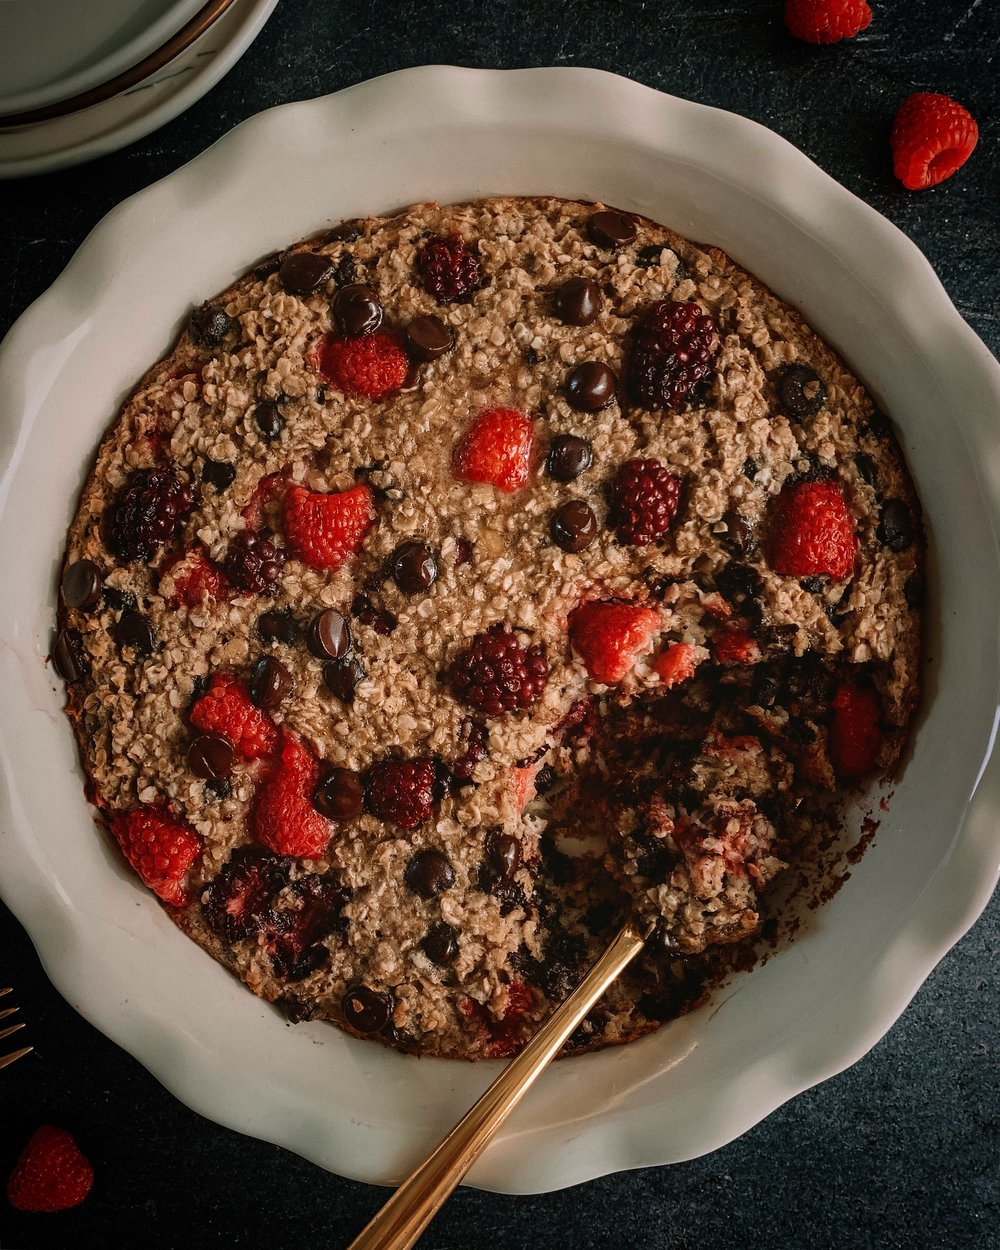 mixed berry chocolate chip oatmeal bake by kalejunkie